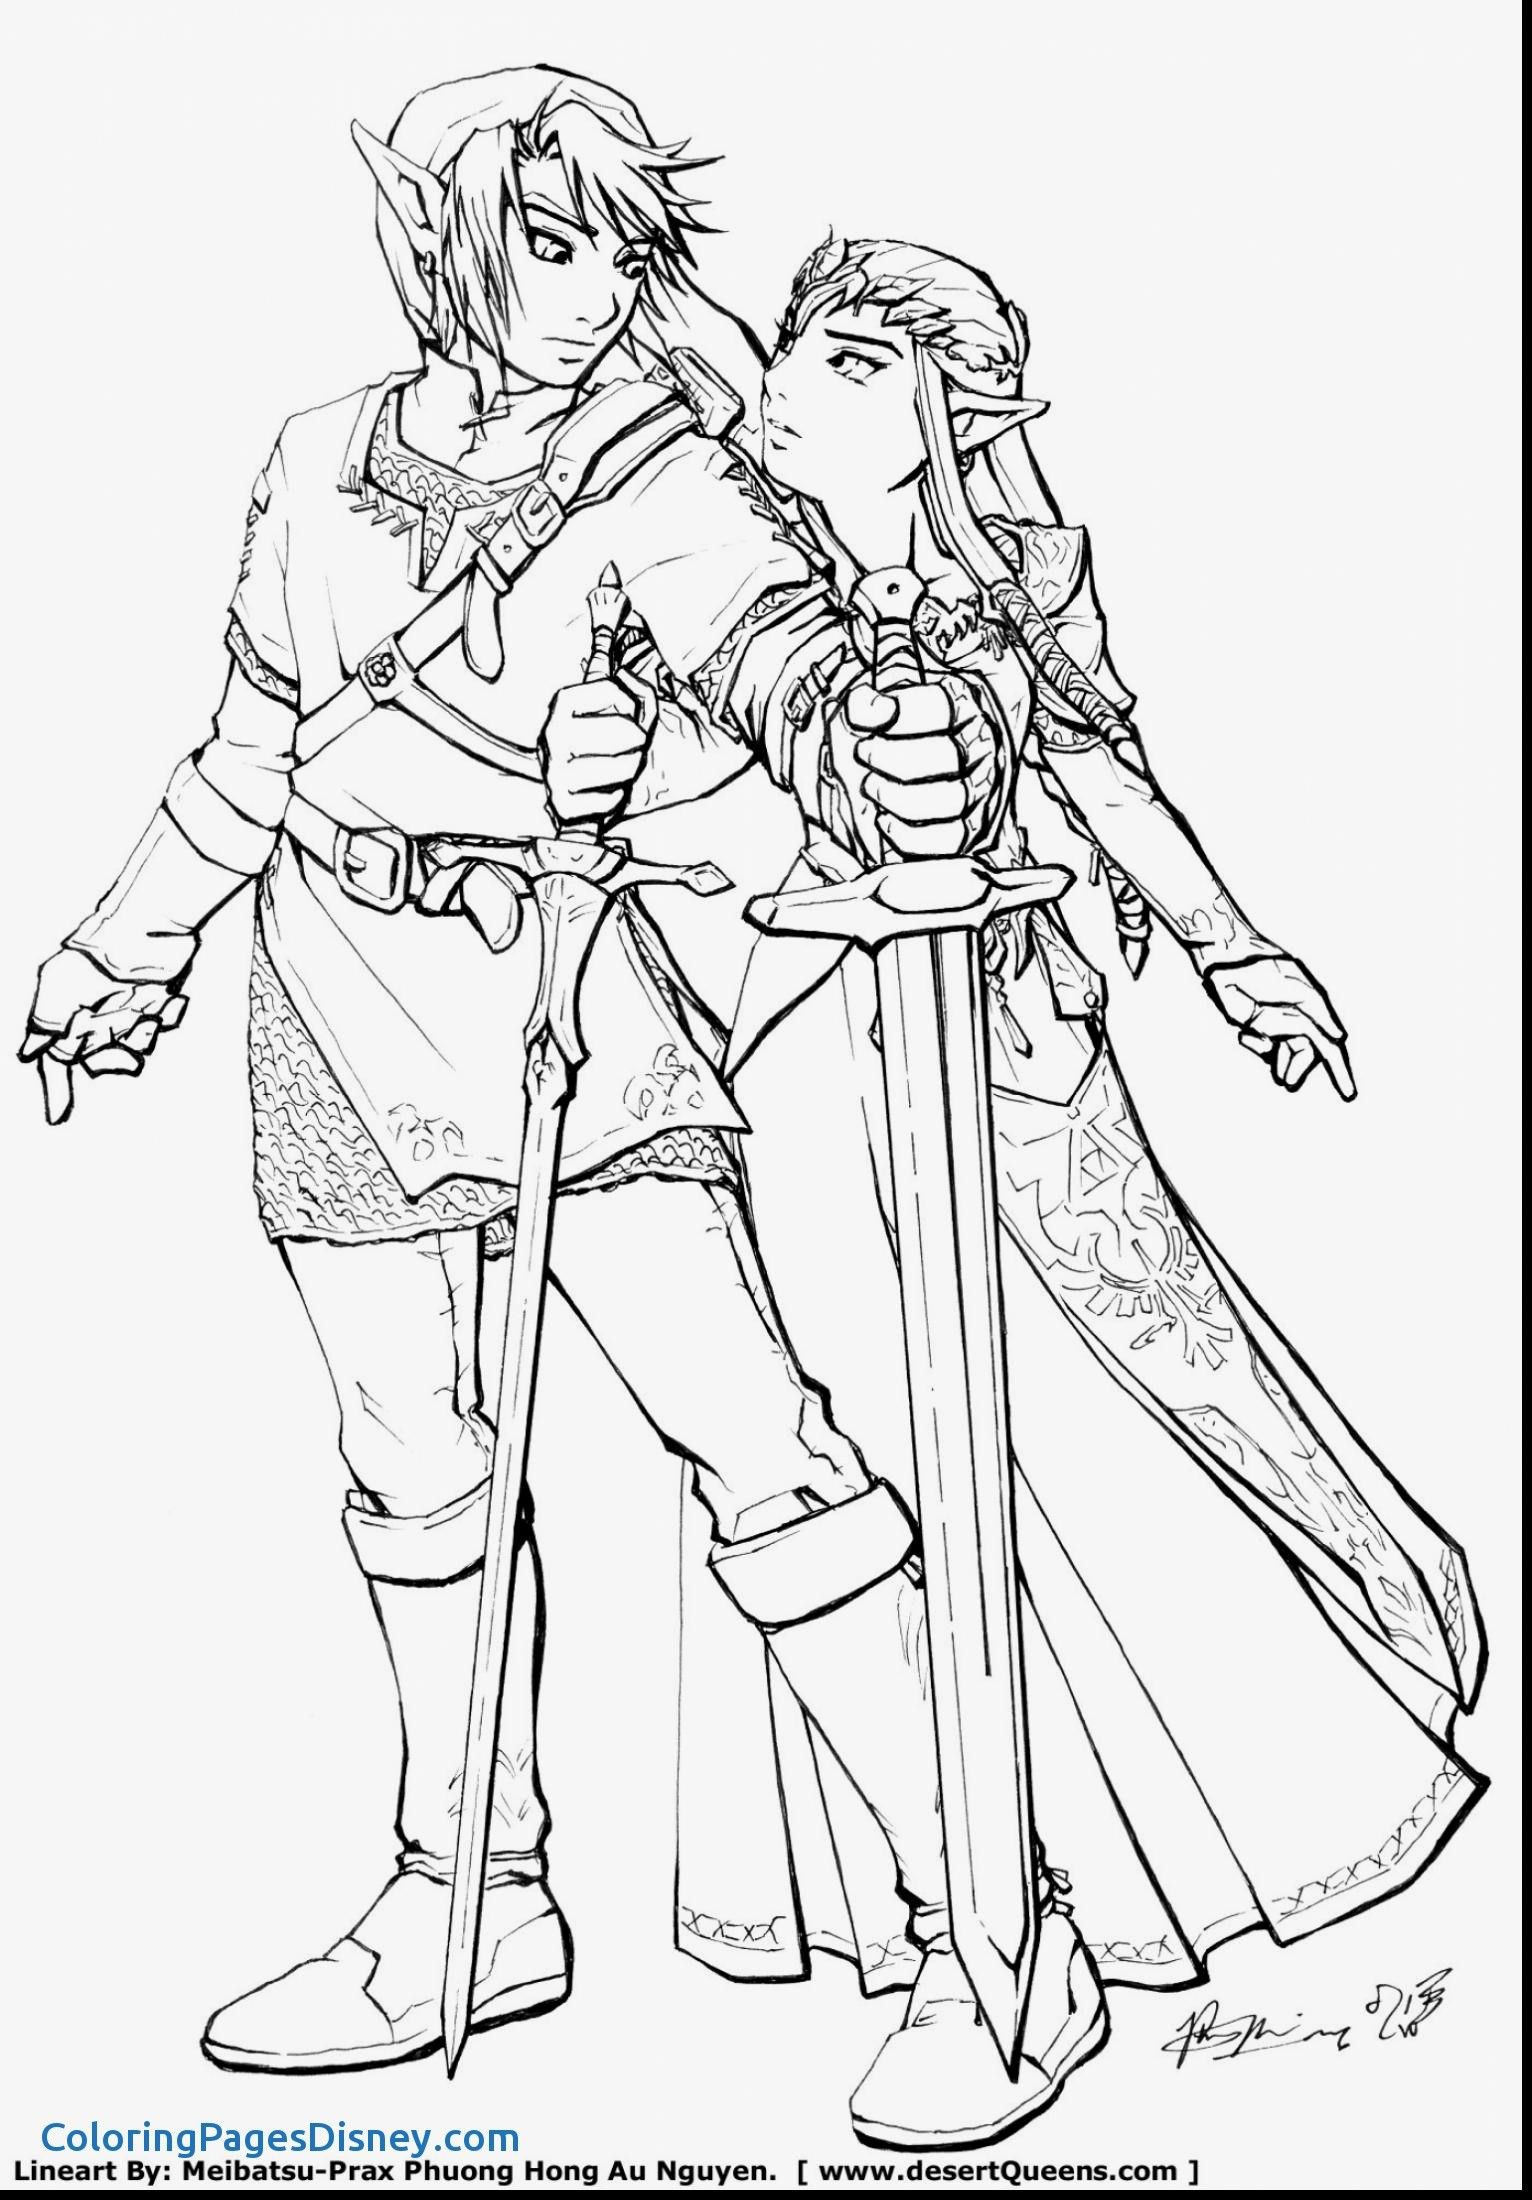 Link Twilight Princess Coloring Pages Through The Thousands Of Pictures On The Web About Link Twilight Princess Coloring Pages Coloring Pages Coloring Books